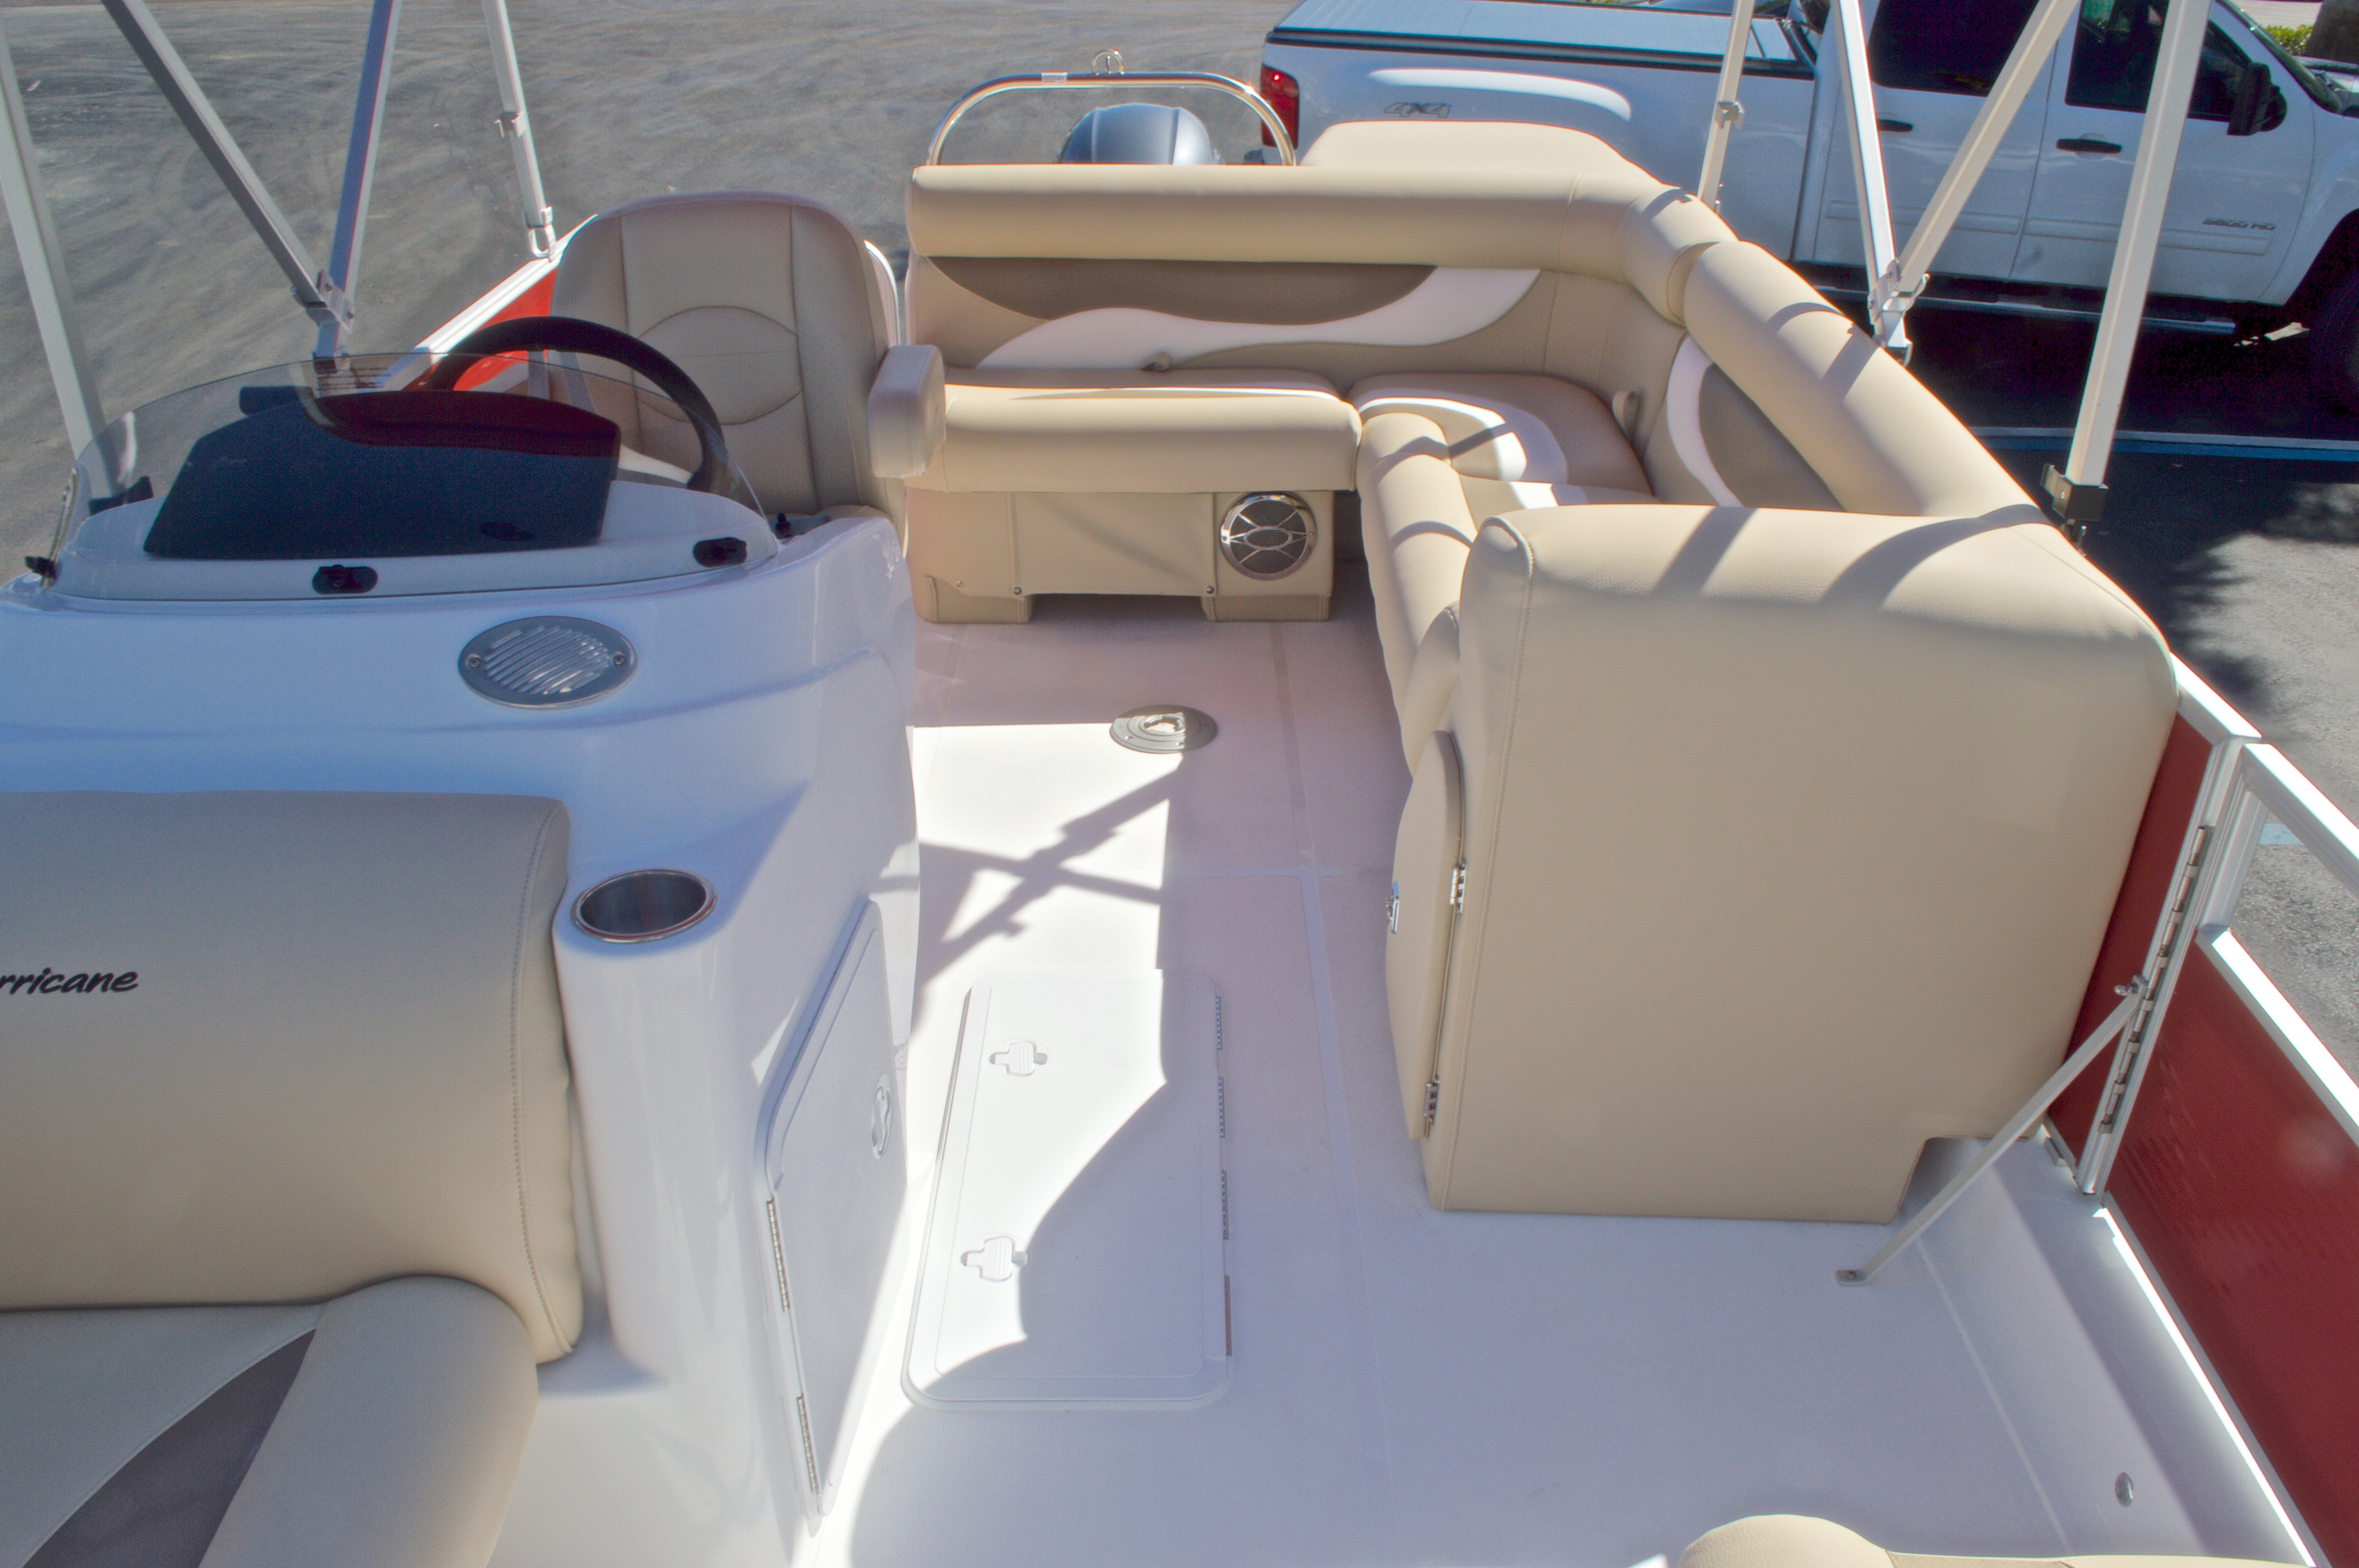 Thumbnail 57 for New 2016 Hurricane Fundeck FD 196 OB boat for sale in Vero Beach, FL